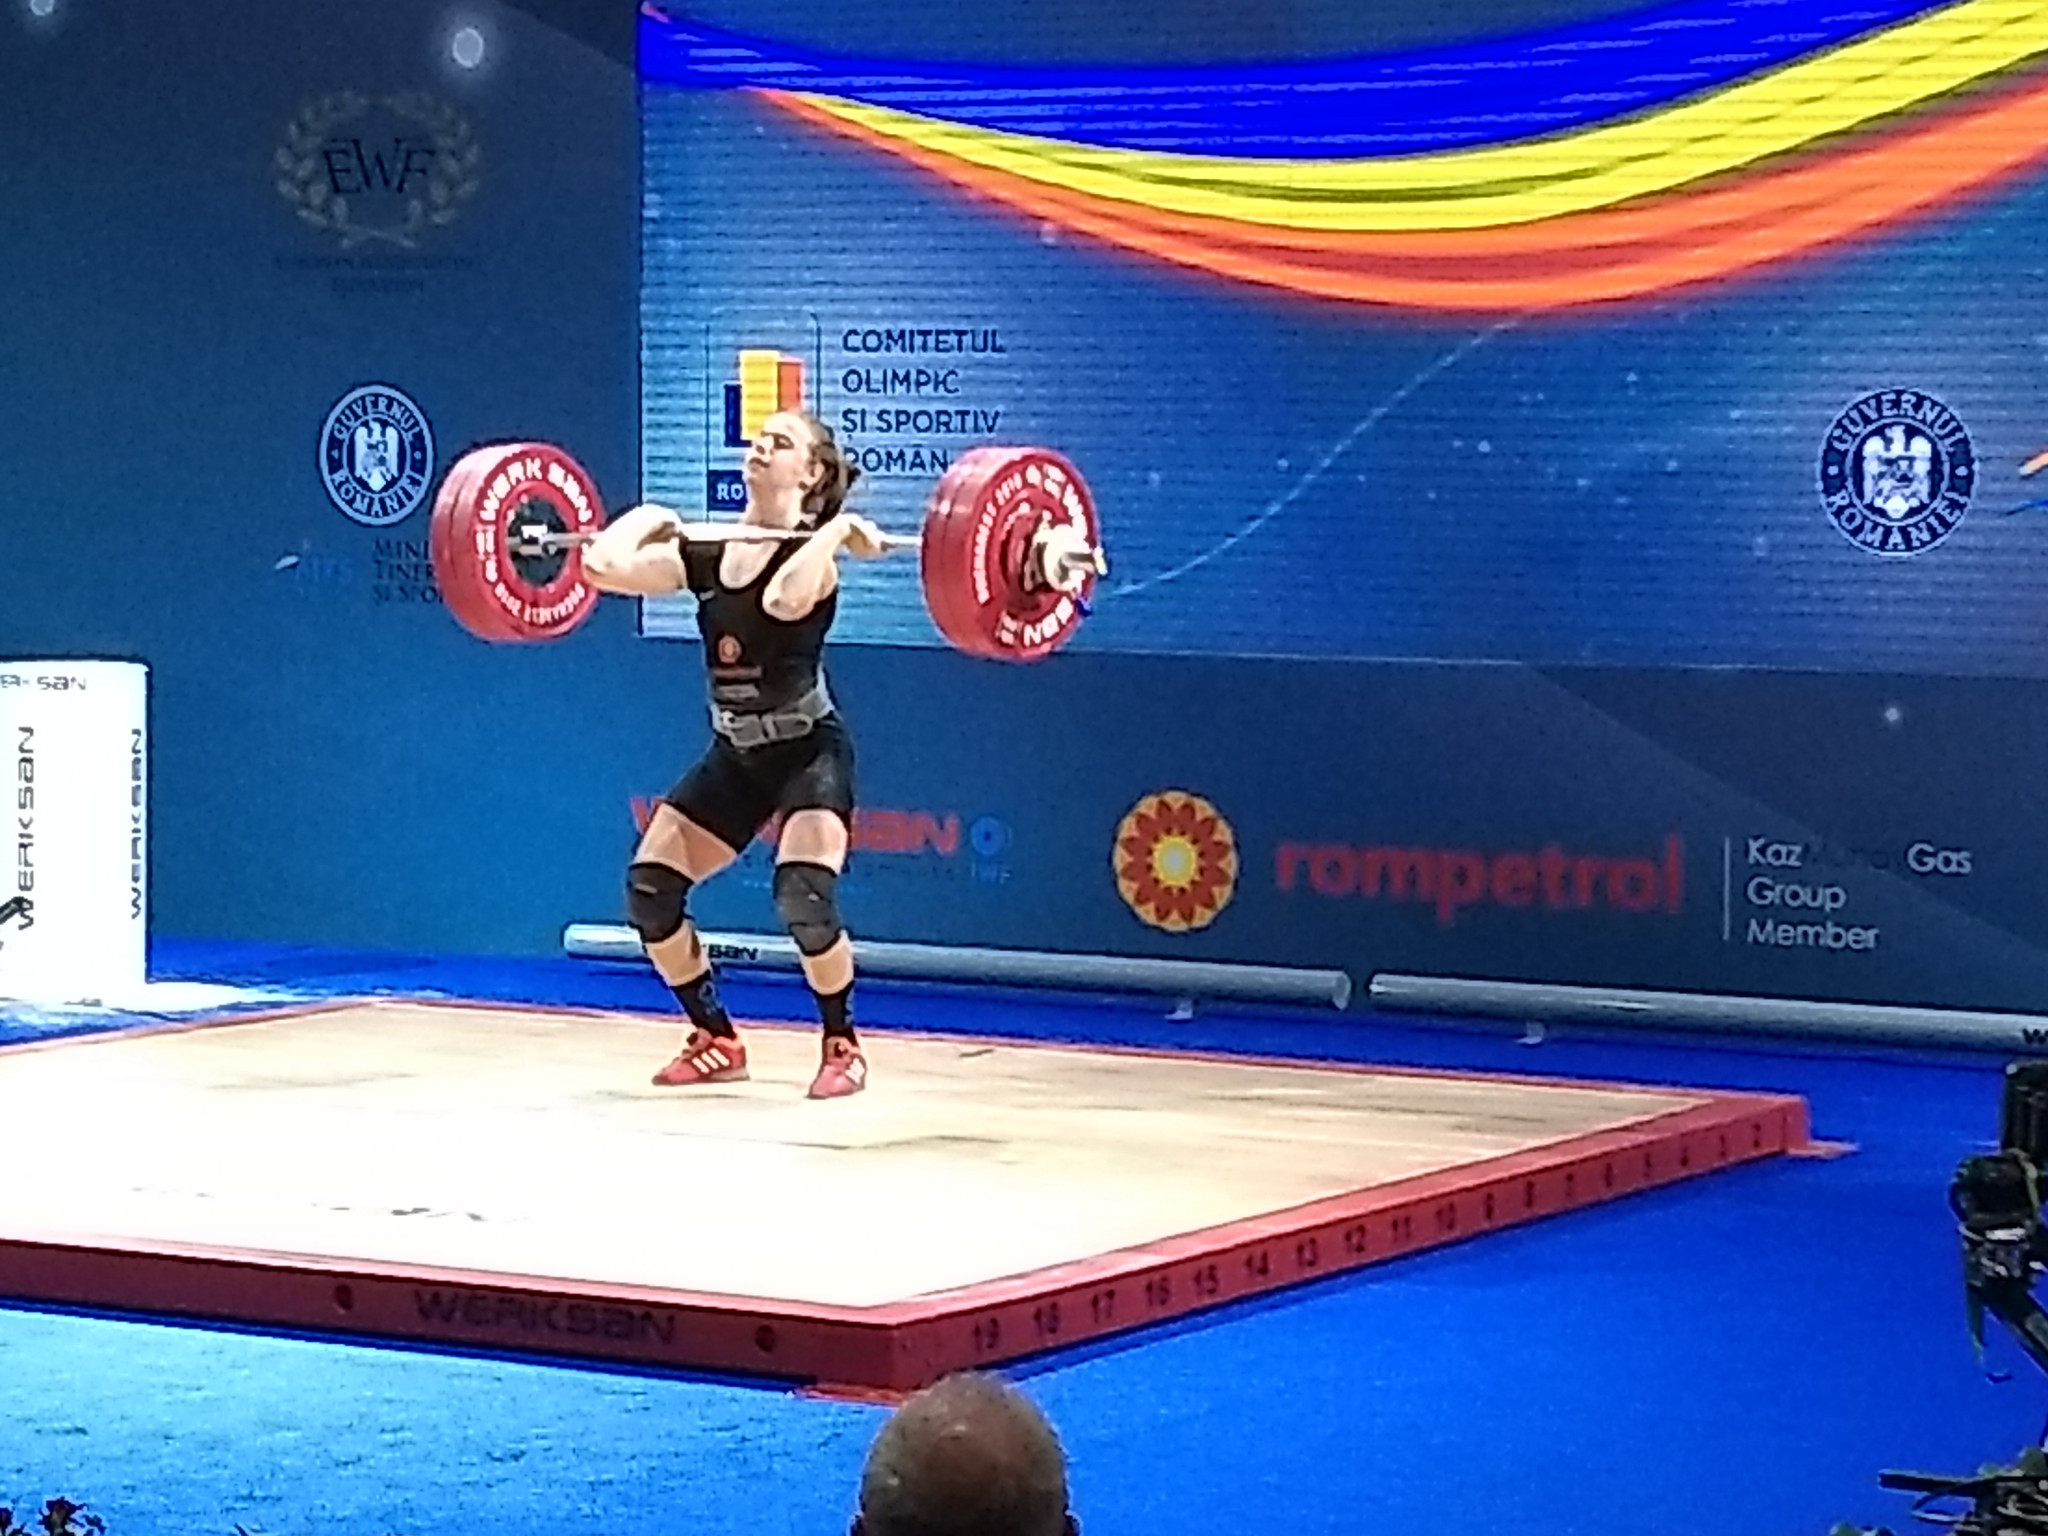 Olympic heroes Szabo and Damian lend support as Romania sets weightlifting record - as fastest hosts